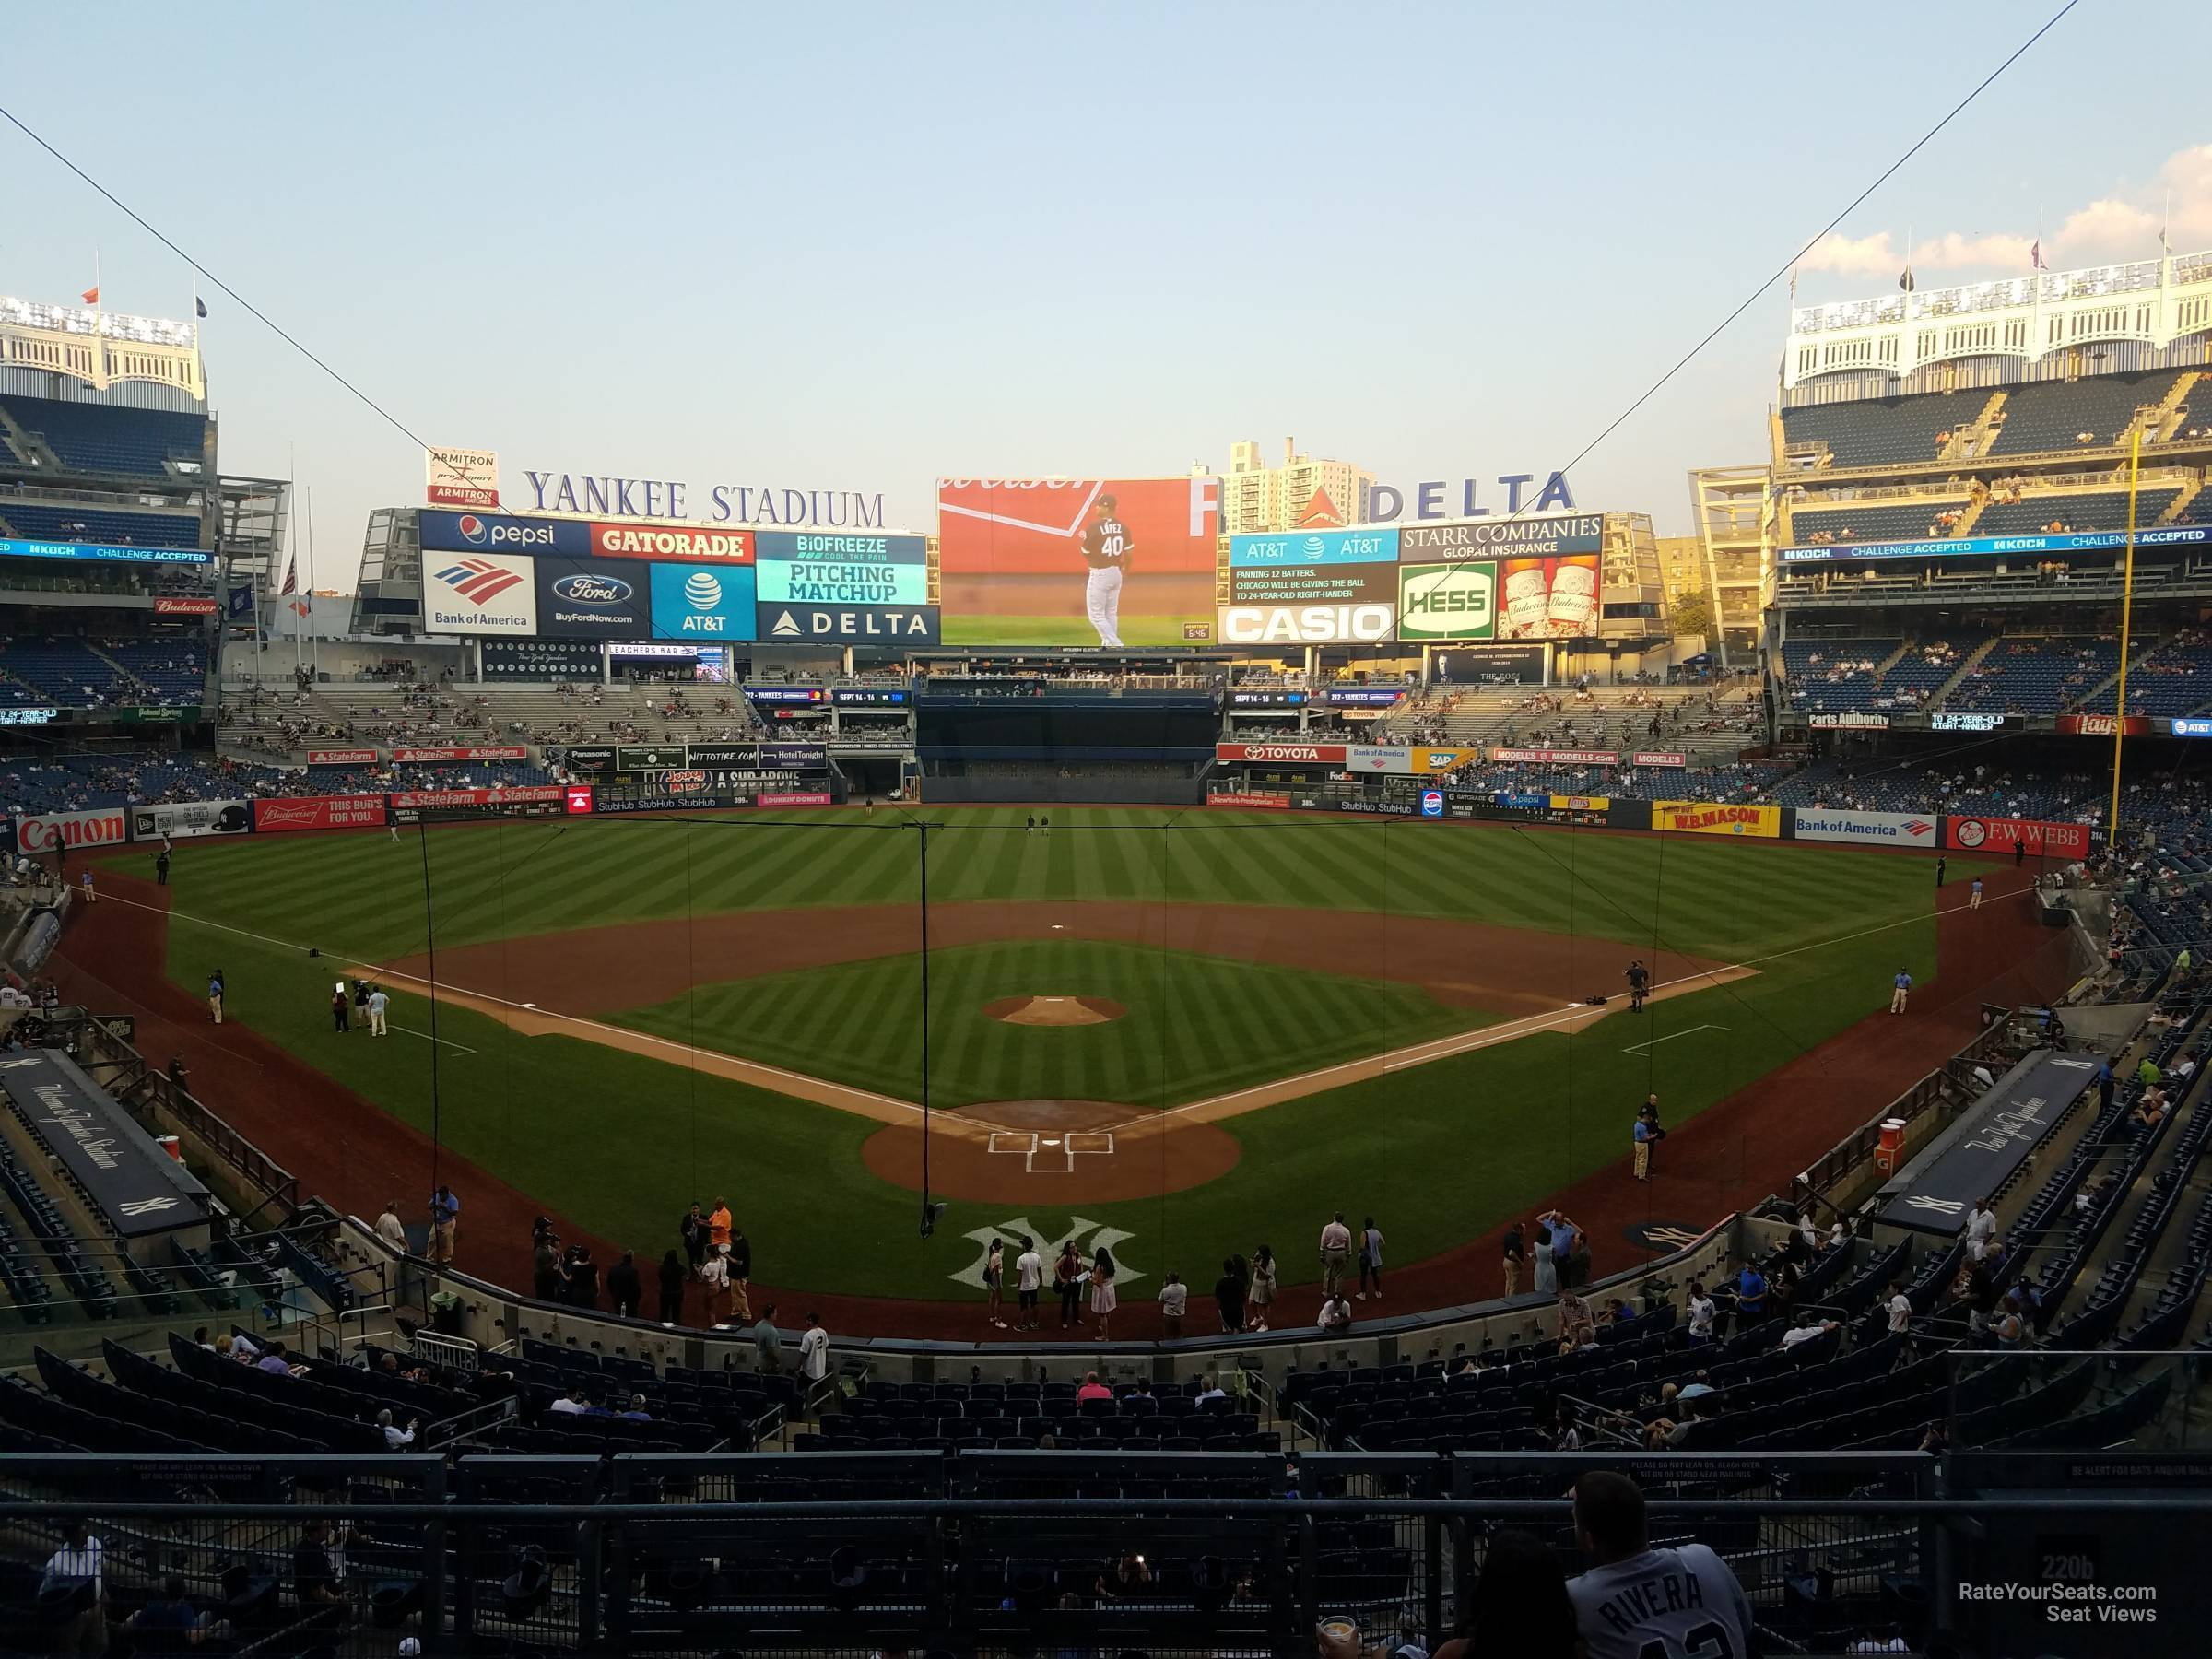 New York Yankees Seat View for Yankee Stadium Section 220B, Row 7